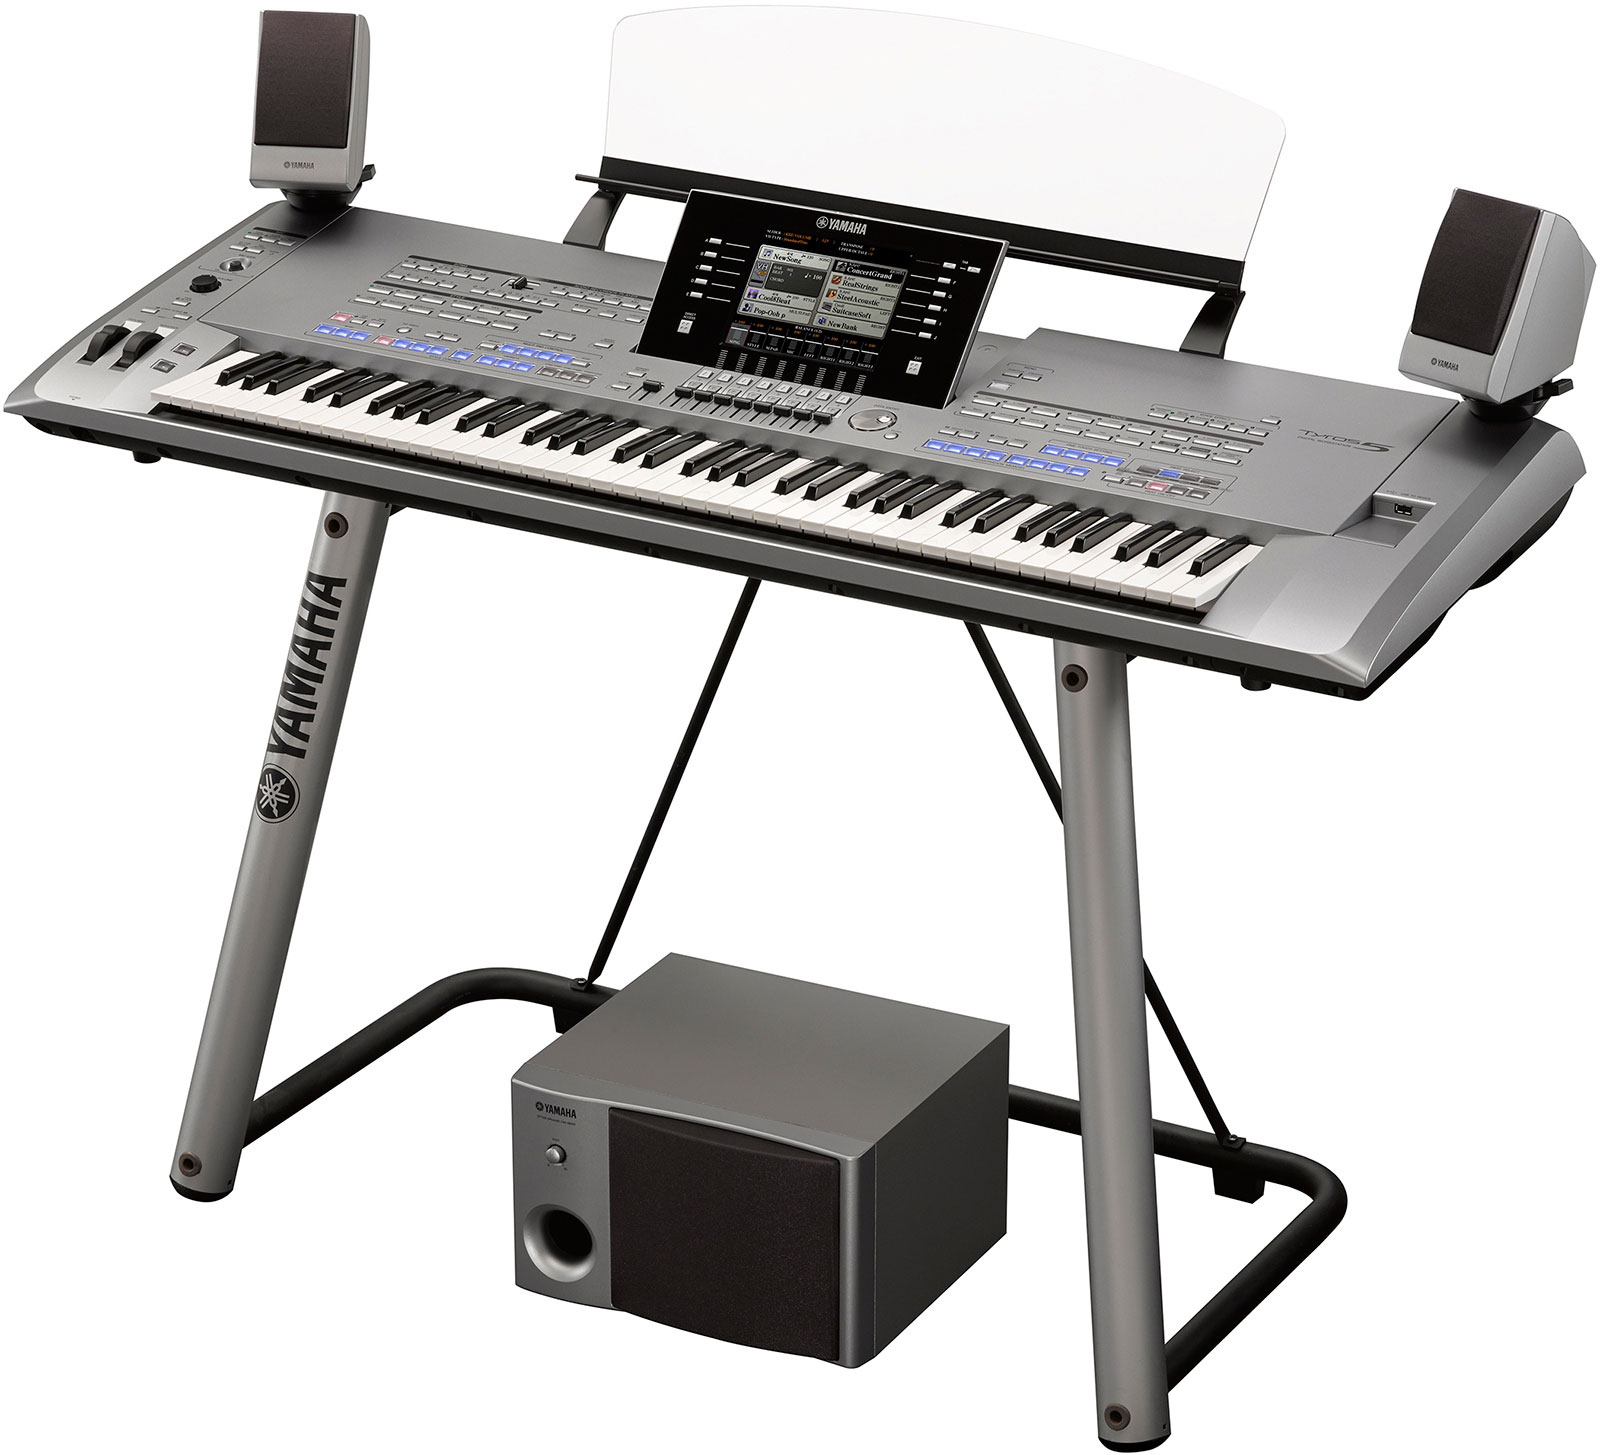 yamaha tyros 5 61 and 76 key models announced piano and ForYamaha Tyros 5